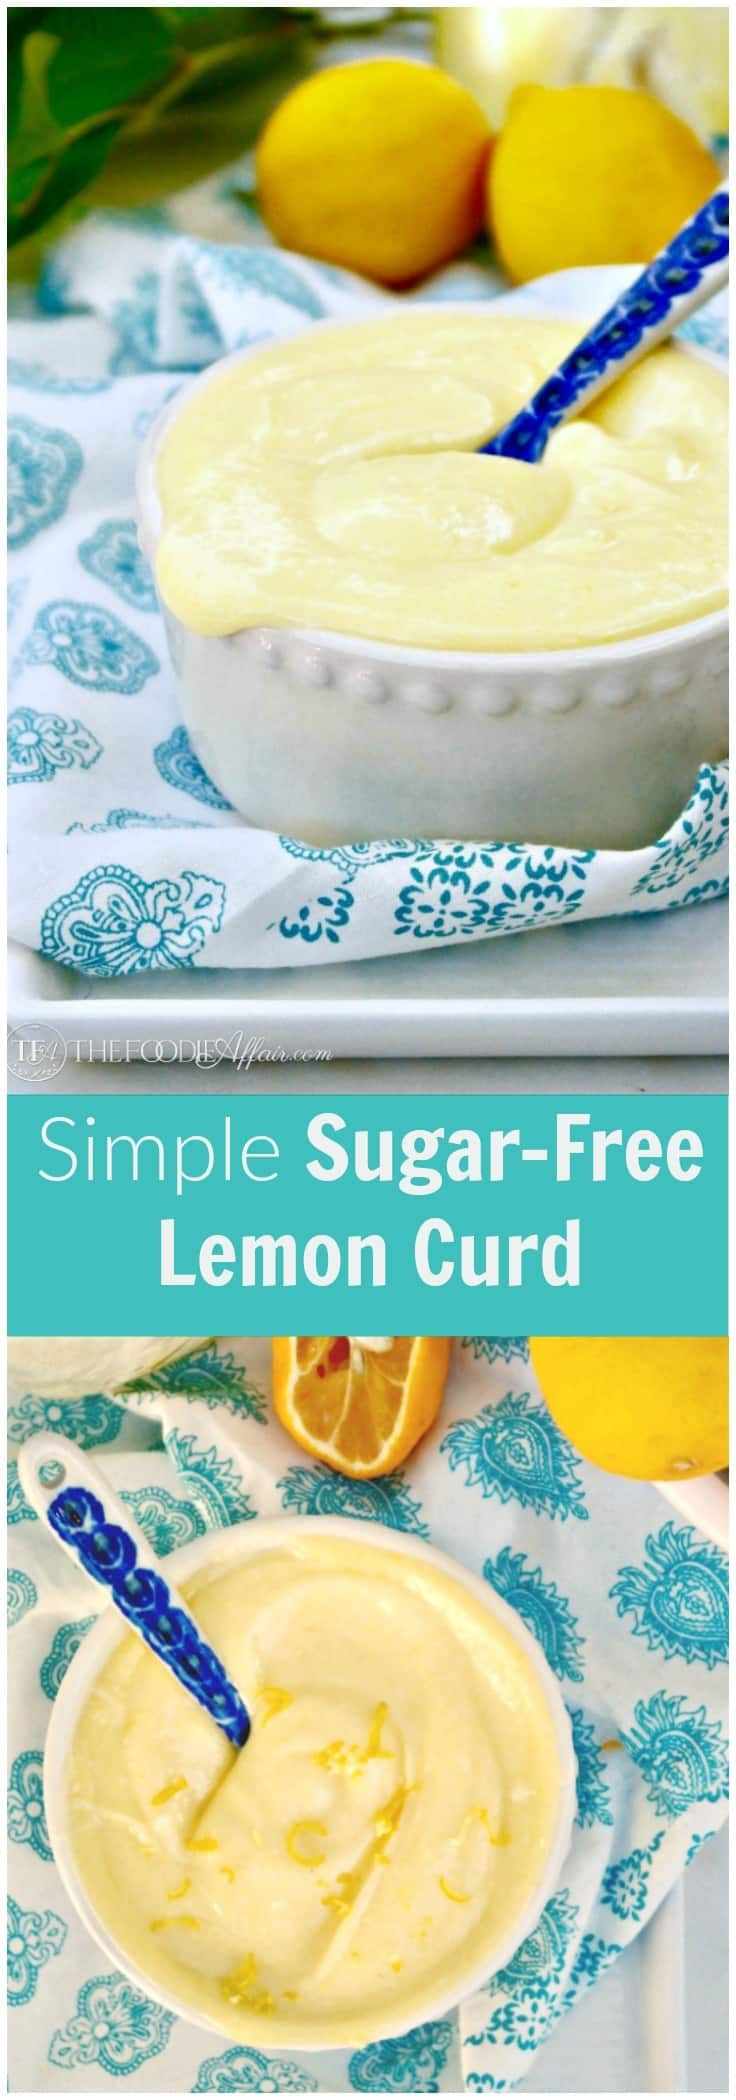 Sugar Free Lemon Curd with the same creamy texture as curd with granulated sugar. Eat by the spoonful or add this lower carb spread and topping to desserts. #SugarFree #Curd #Lemon